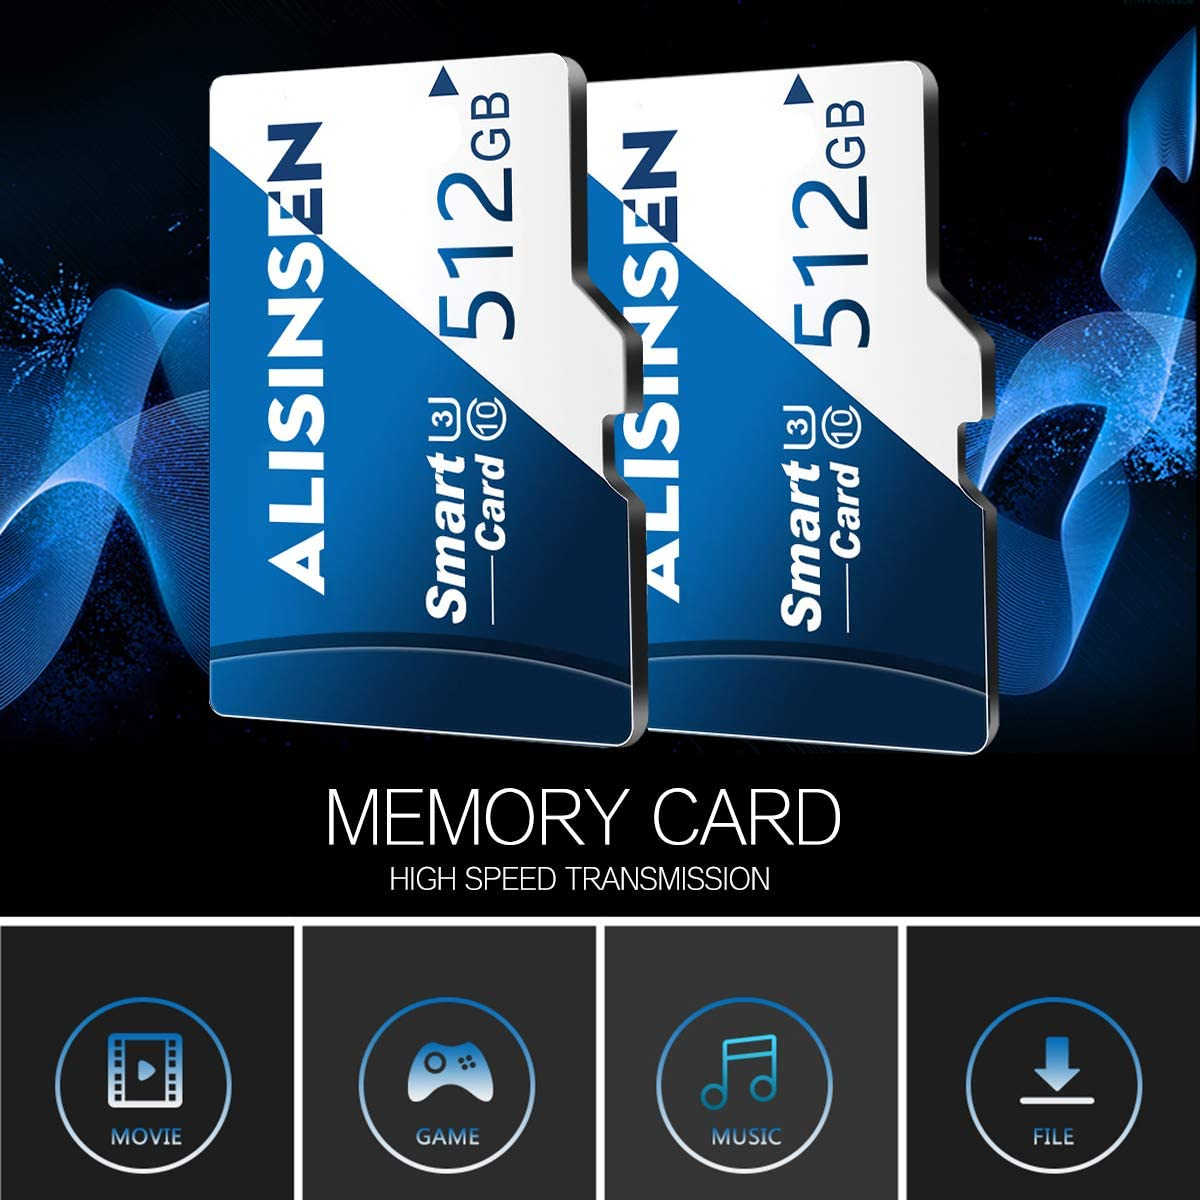 Micro sd Card 512GB SD Memory Card for Android Smartphones,TF Card Class 10 with A SD Card Adapter for Tablet Computer/Phone/Surveillance Tachograph Drone/Action Camera/Surveillance&Security Cams